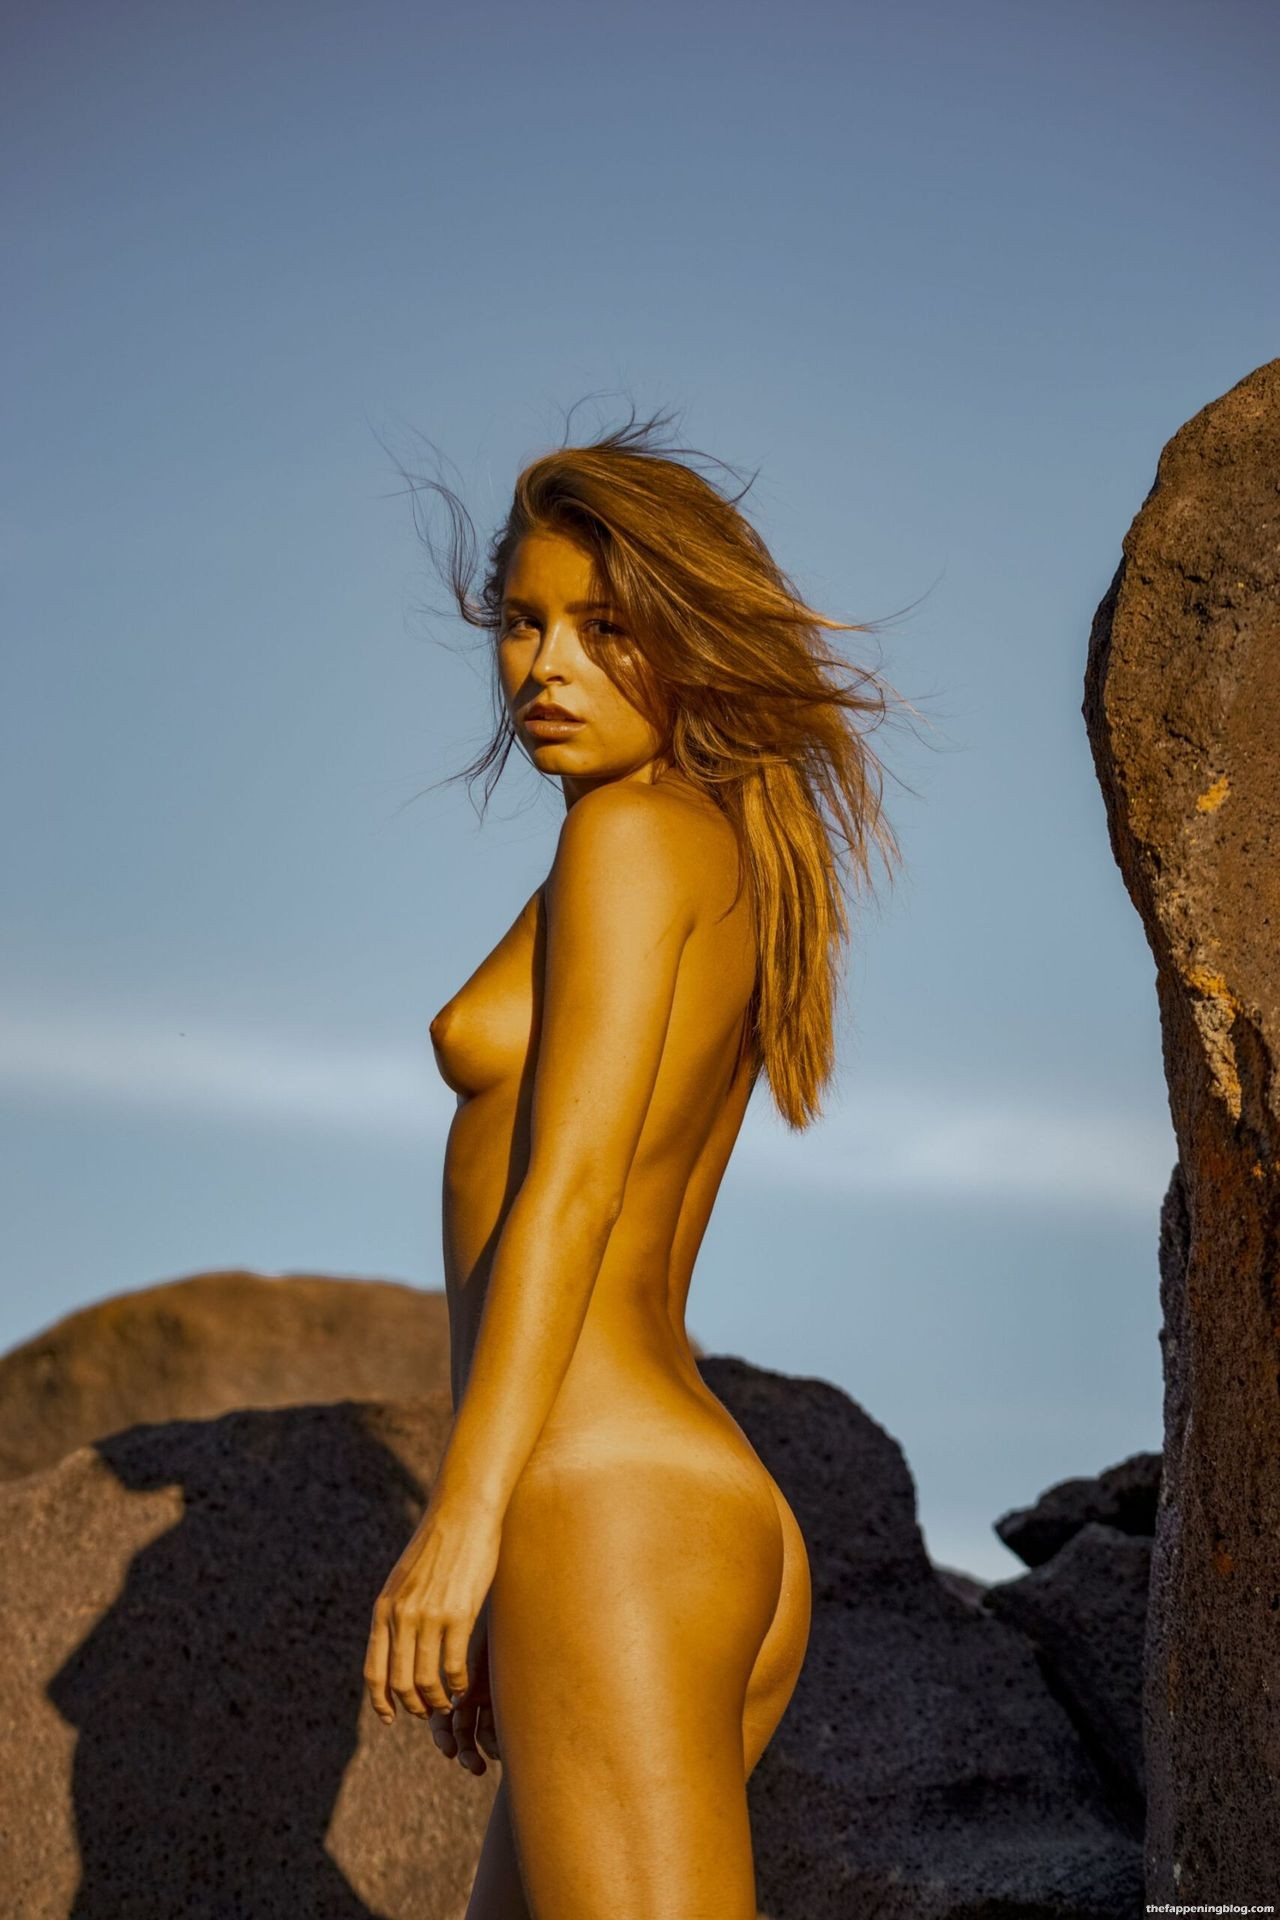 Marisa-Papen-Stunning-Naked-Body-41-scaled1-thefappeningblog.com_.jpg